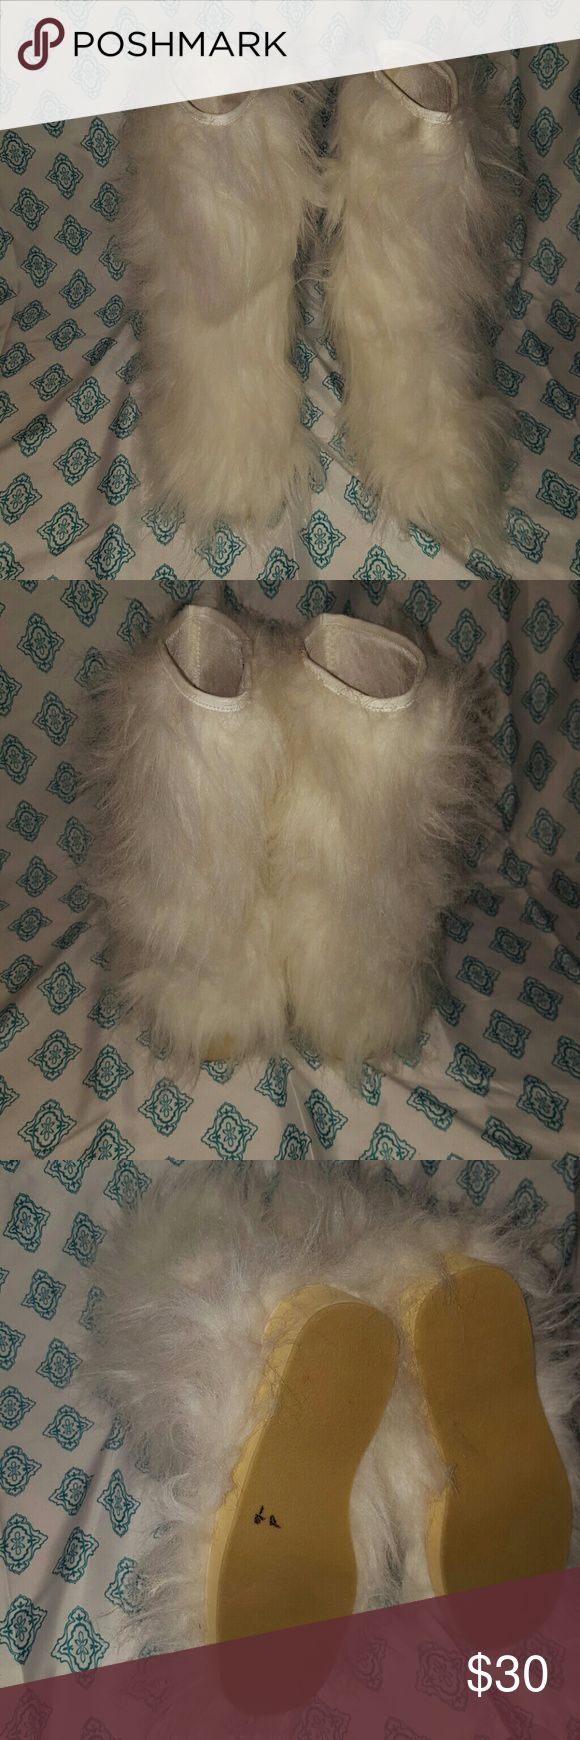 Colin stuart boots Colin stuart white furry boots Excellent condition-tiny cracks in the material around top Colin Stuart Shoes